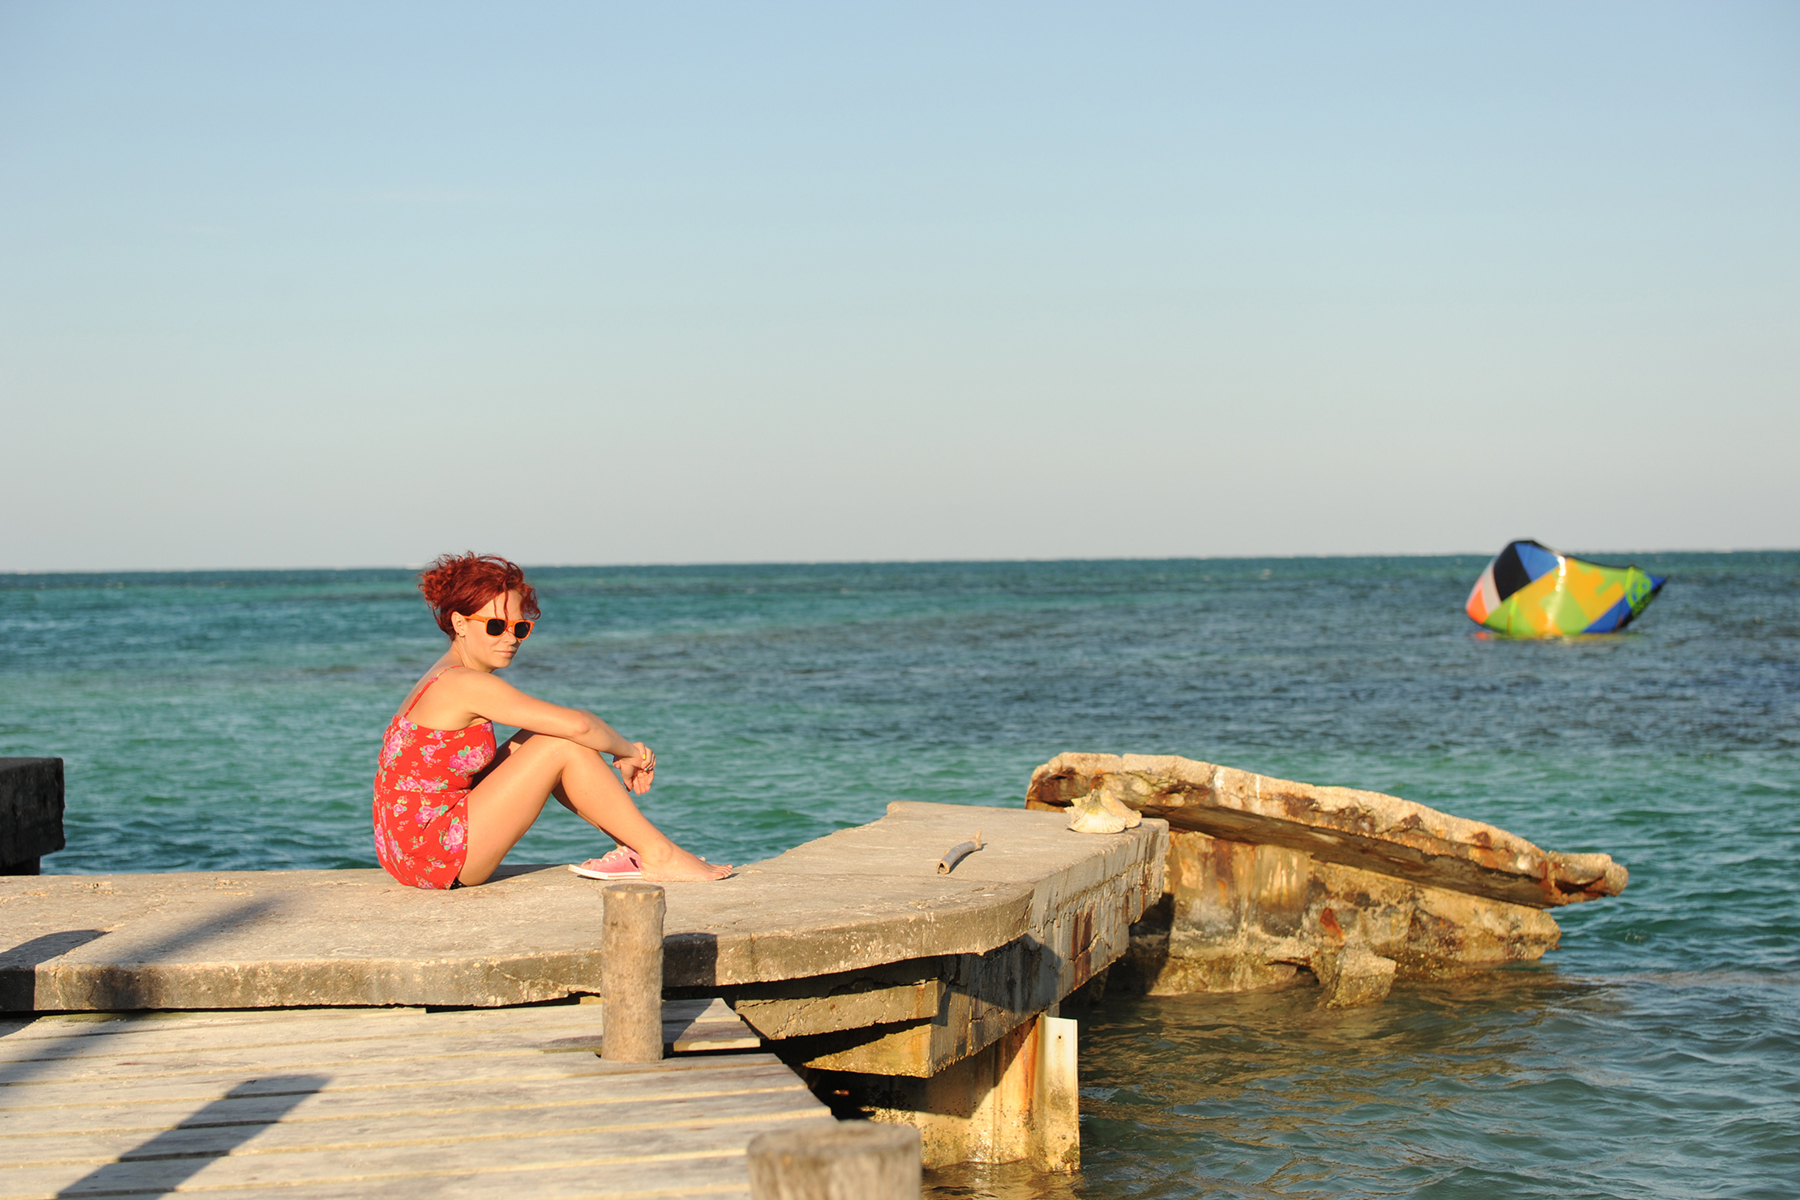 4everLuv goes to the island of Caye Caulker, Belize